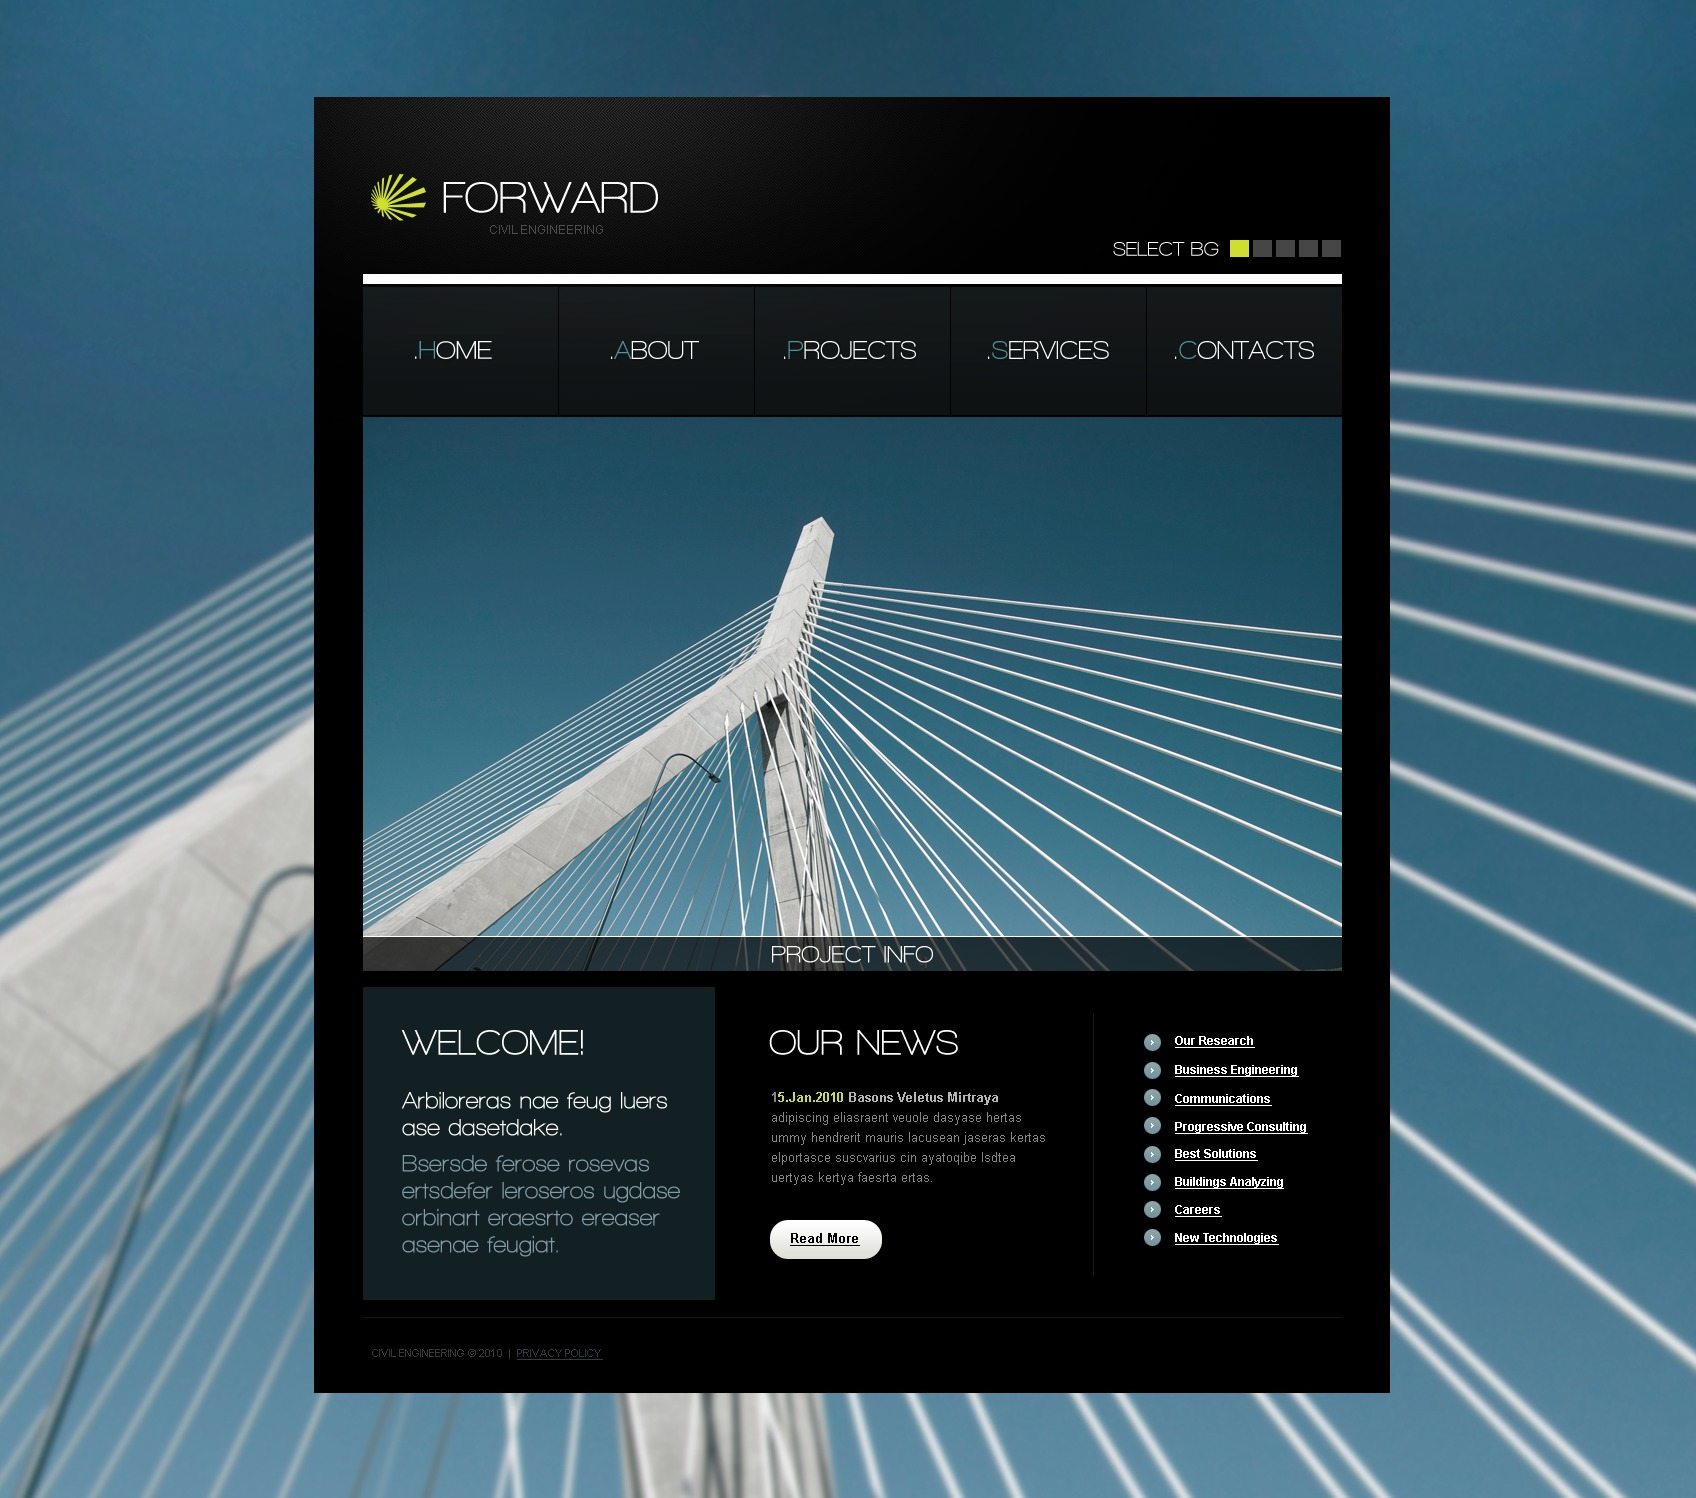 The Forward Civil Engineering PSD Design 54444, one of the best PSD templates of its kind (industrial, architecture, wide, jquery), also known as forward civil engineering PSD template, services PSD template, architecture company PSD template, construction PSD template, buildings PSD template, technology PSD template, innovation PSD template, skyscrapers PSD template, projects PSD template, constructions PSD template, houses PSD template, work PSD template, team PSD template, strategy PSD template, services PSD template, support PSD template, planning solutions design PSD template, non-standard PSD template, creative ideas PSD template, catalogue PSD template, windows PSD template, door and related with forward civil engineering, services, architecture company, construction, buildings, technology, innovation, skyscrapers, projects, constructions, houses, work, team, strategy, services, support, planning solutions design, non-standard, creative ideas, catalogue, windows, door, etc.